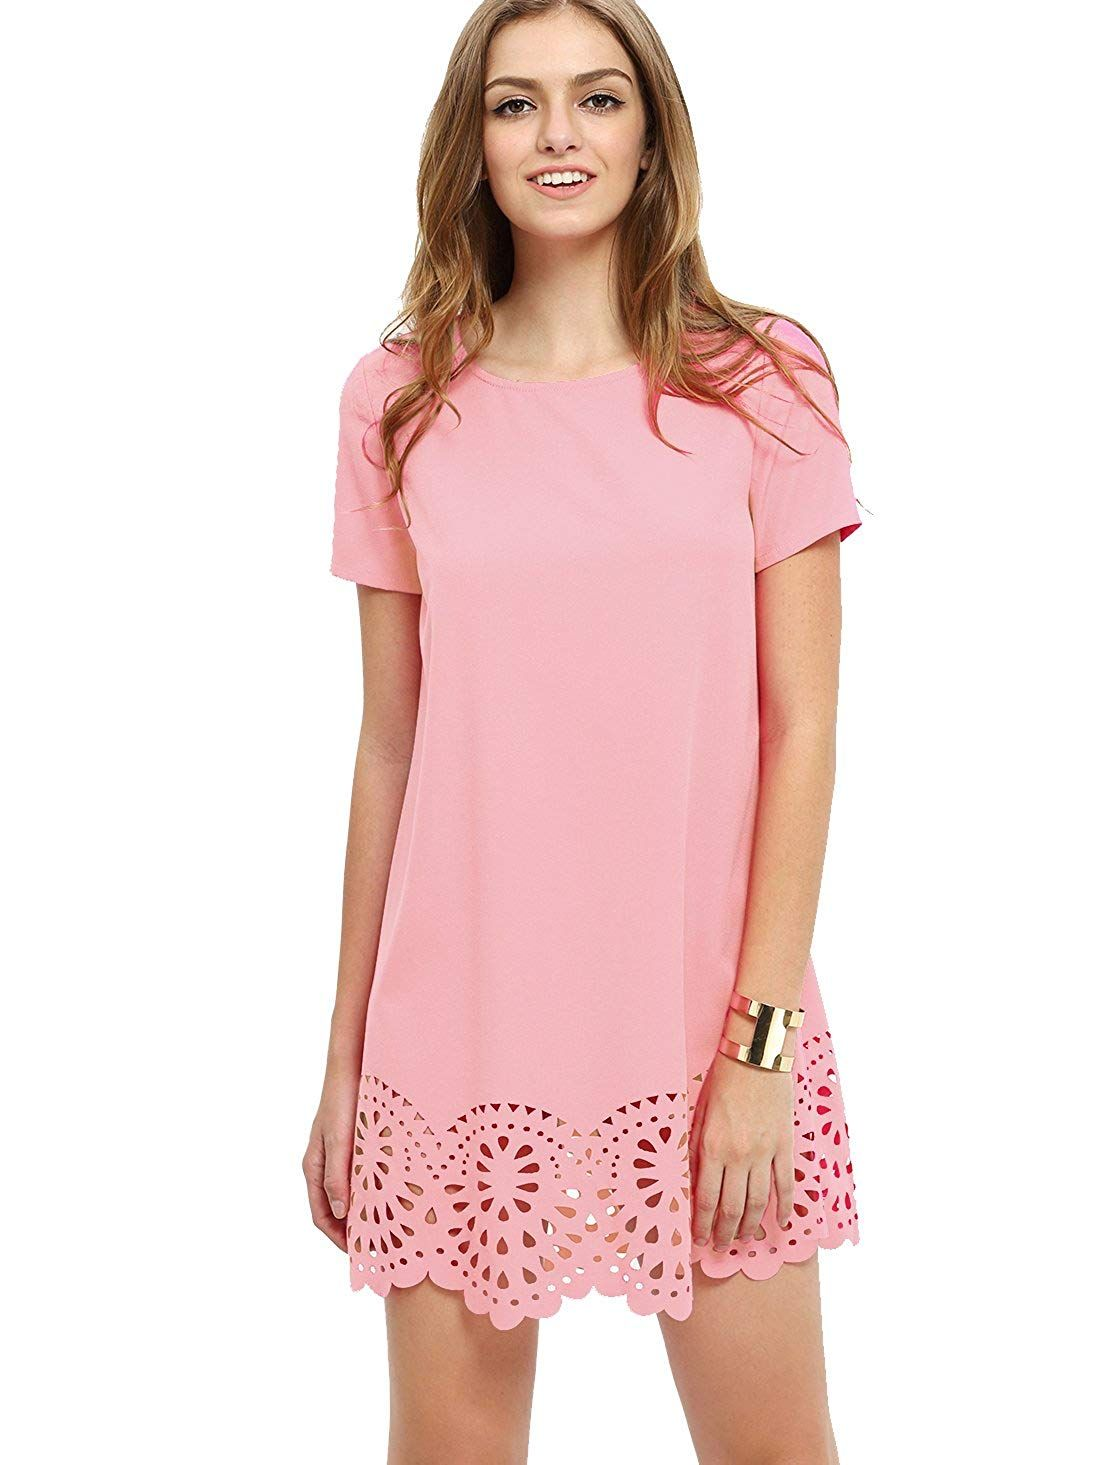 a2b224846e2a SheIn Women's Crew Neck Short Sleeve Hollow Shift Dress at Amazon Women's  Clothing store: